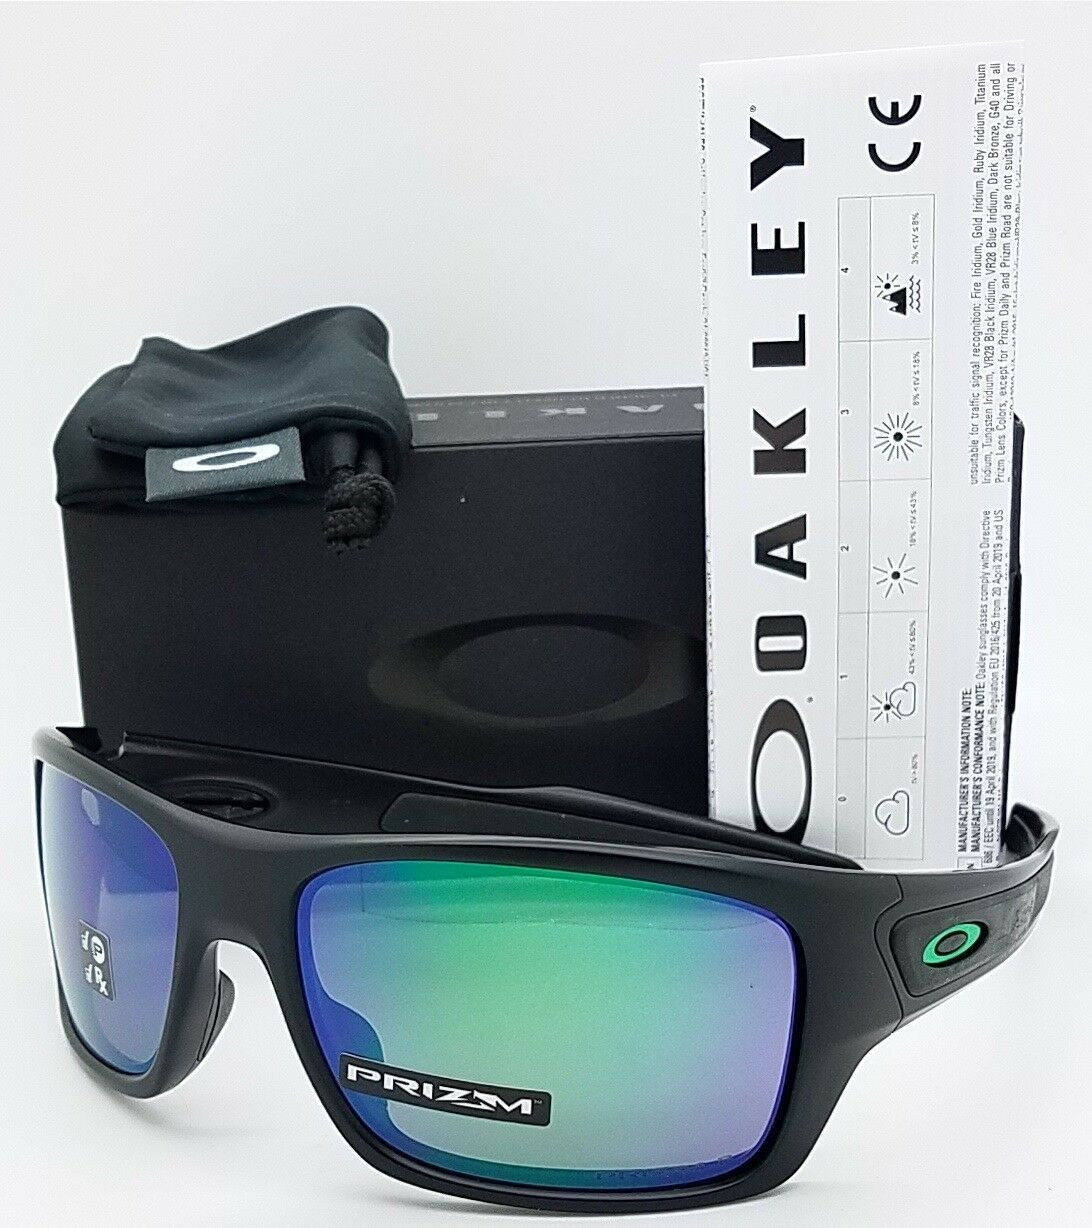 62b3ac008cb NEW Oakley Turbine sunglasses Matte Black Prizm Jade Polarized 9263 ...